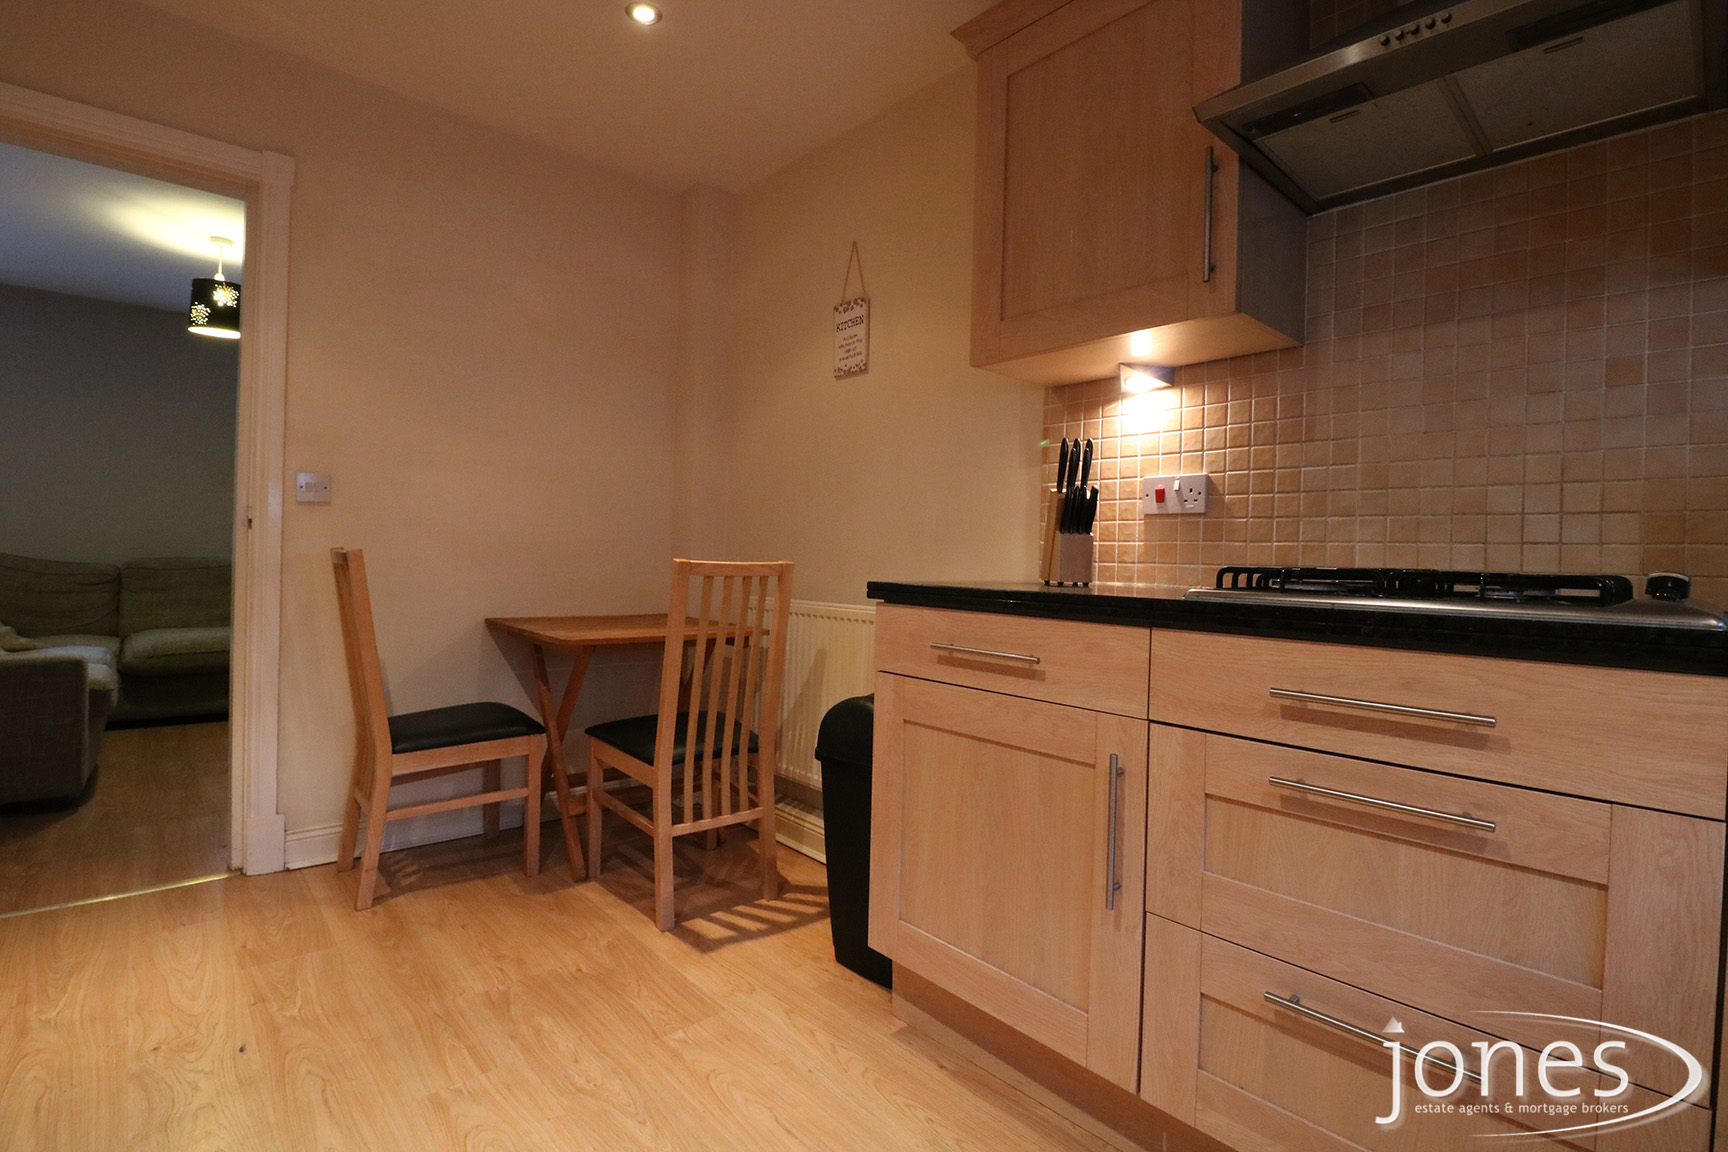 Home for Sale Let - Photo 07 Chart House, Admiral Way,Hartlepool Marina, Hartlepool TS24 0WB